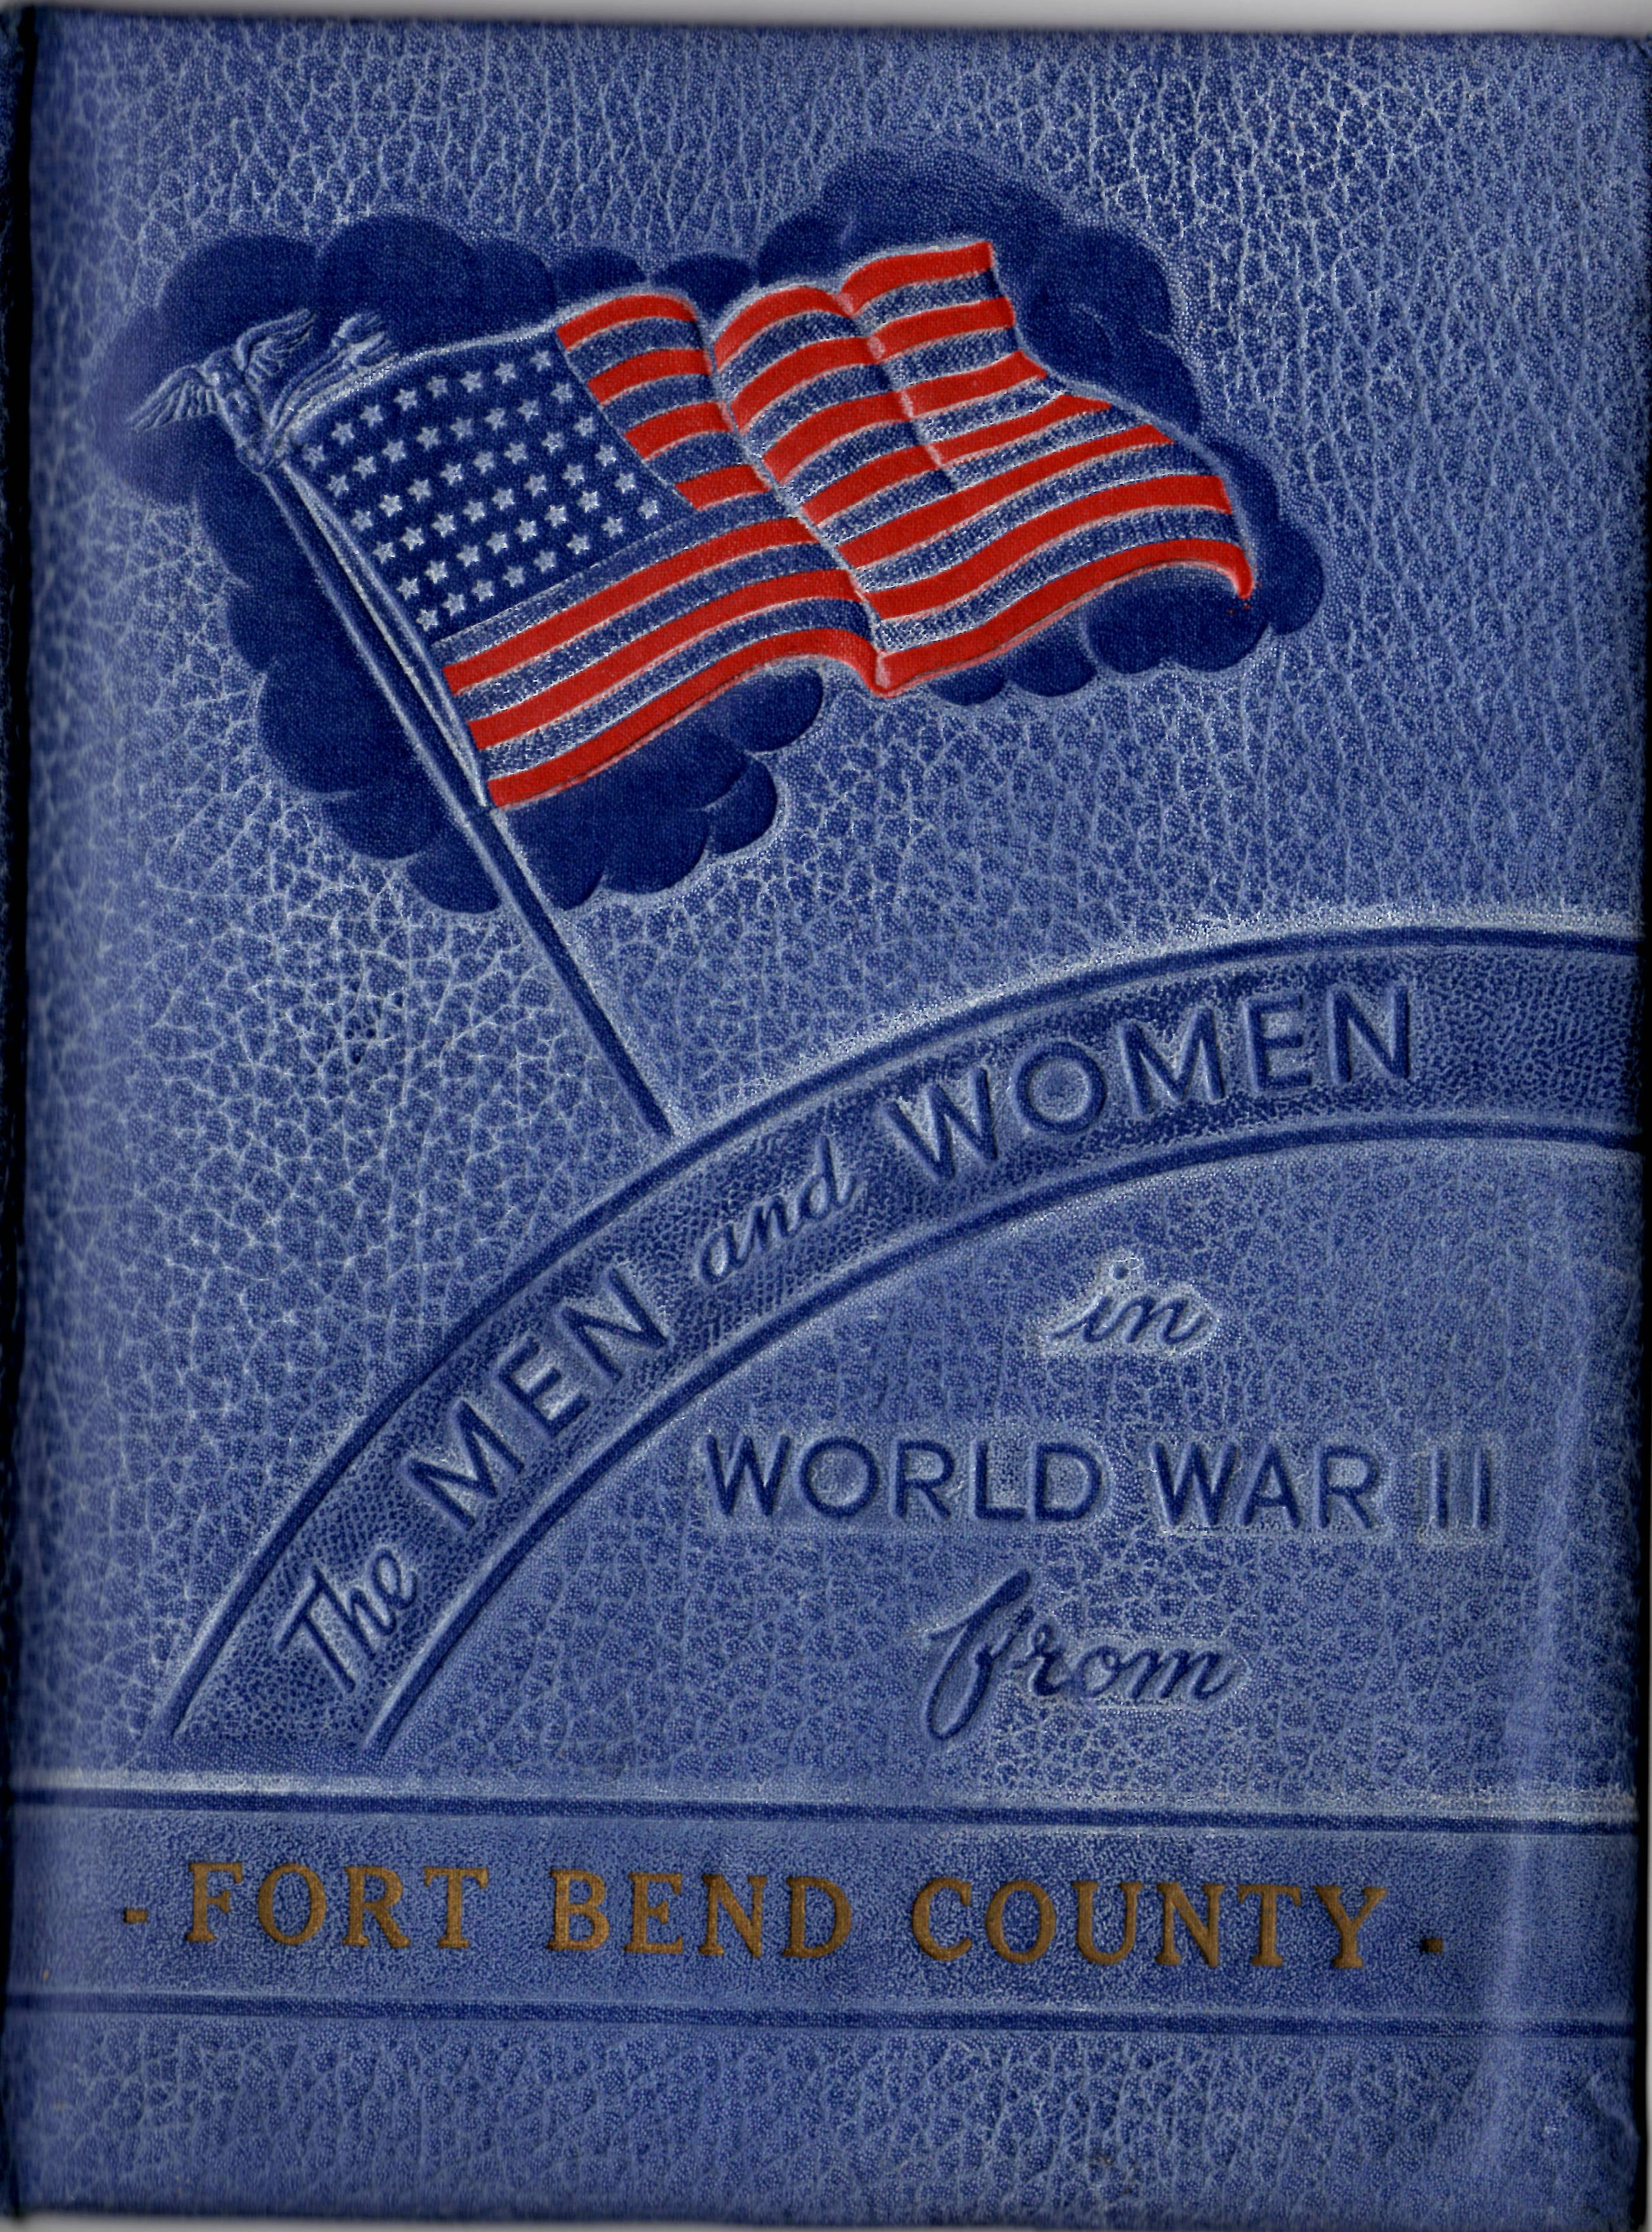 Men and women in the Armed Forces from Fort Bend County Texas